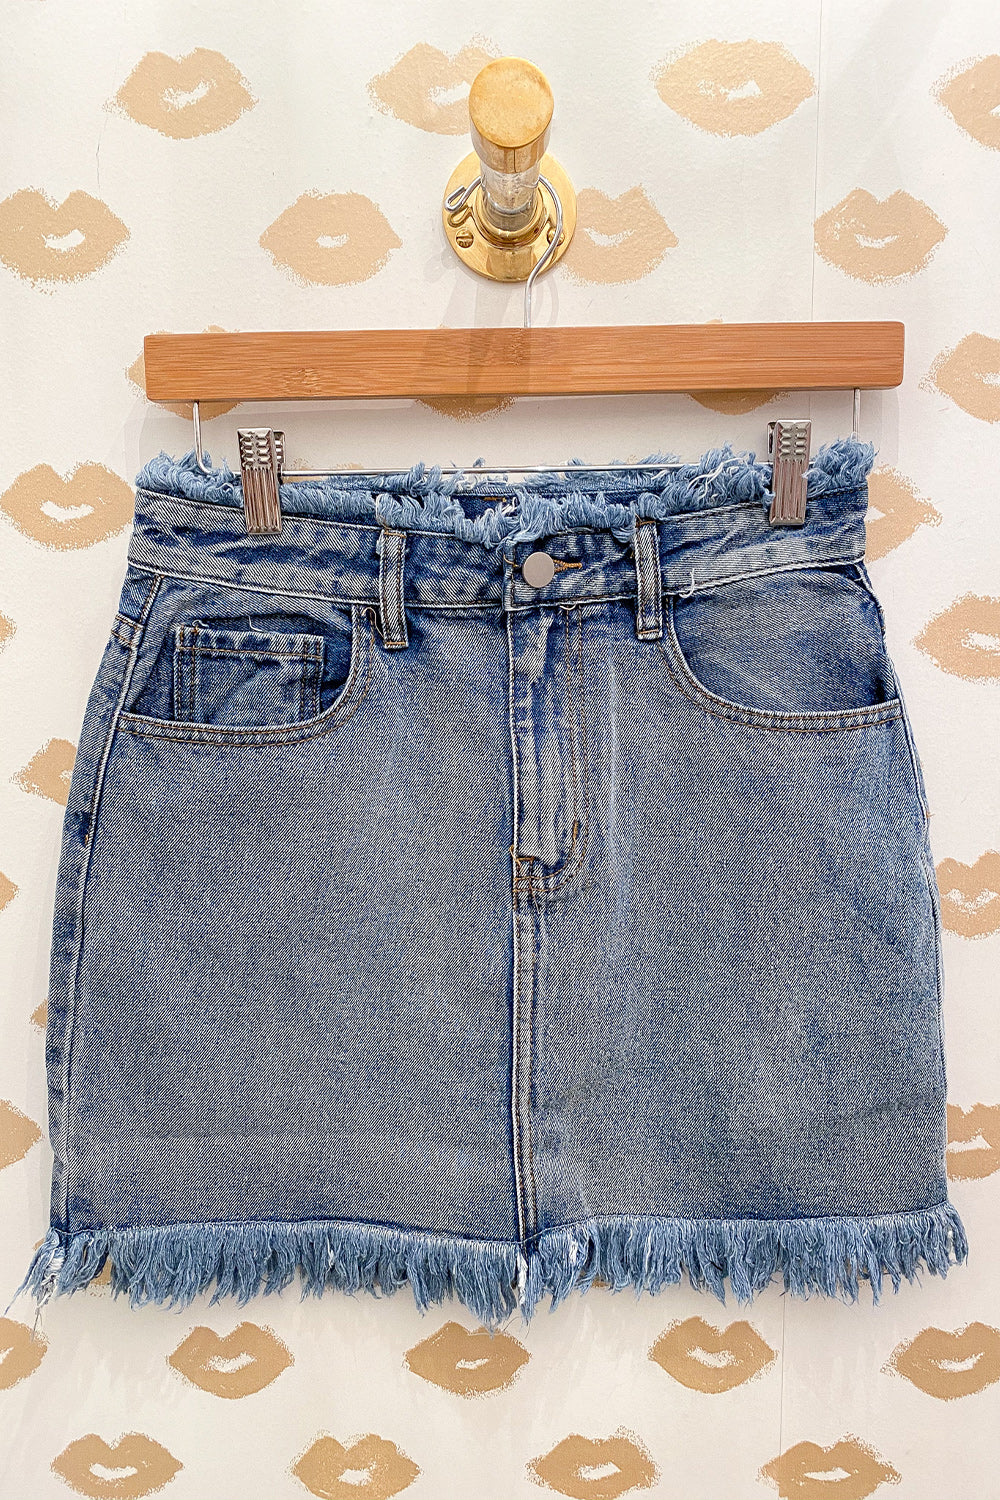 Fray It Louder Light Denim High Waisted Mini Skirt with Frayed Hems